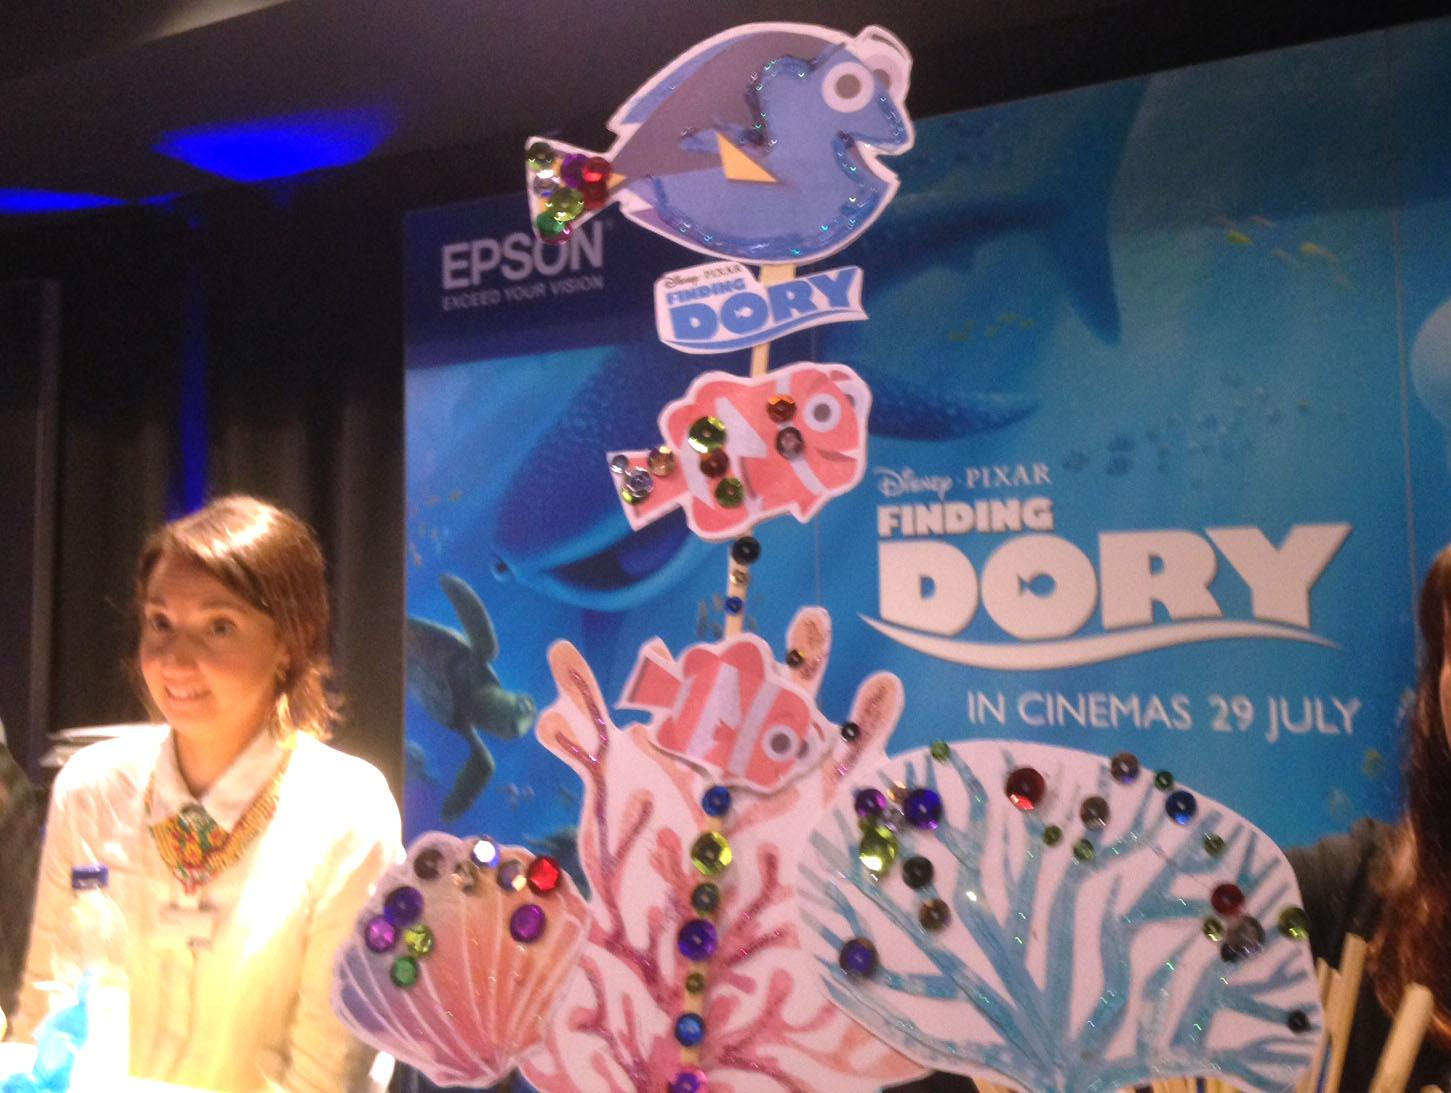 #PrintingDory Event with Epson at the Disney Store in London